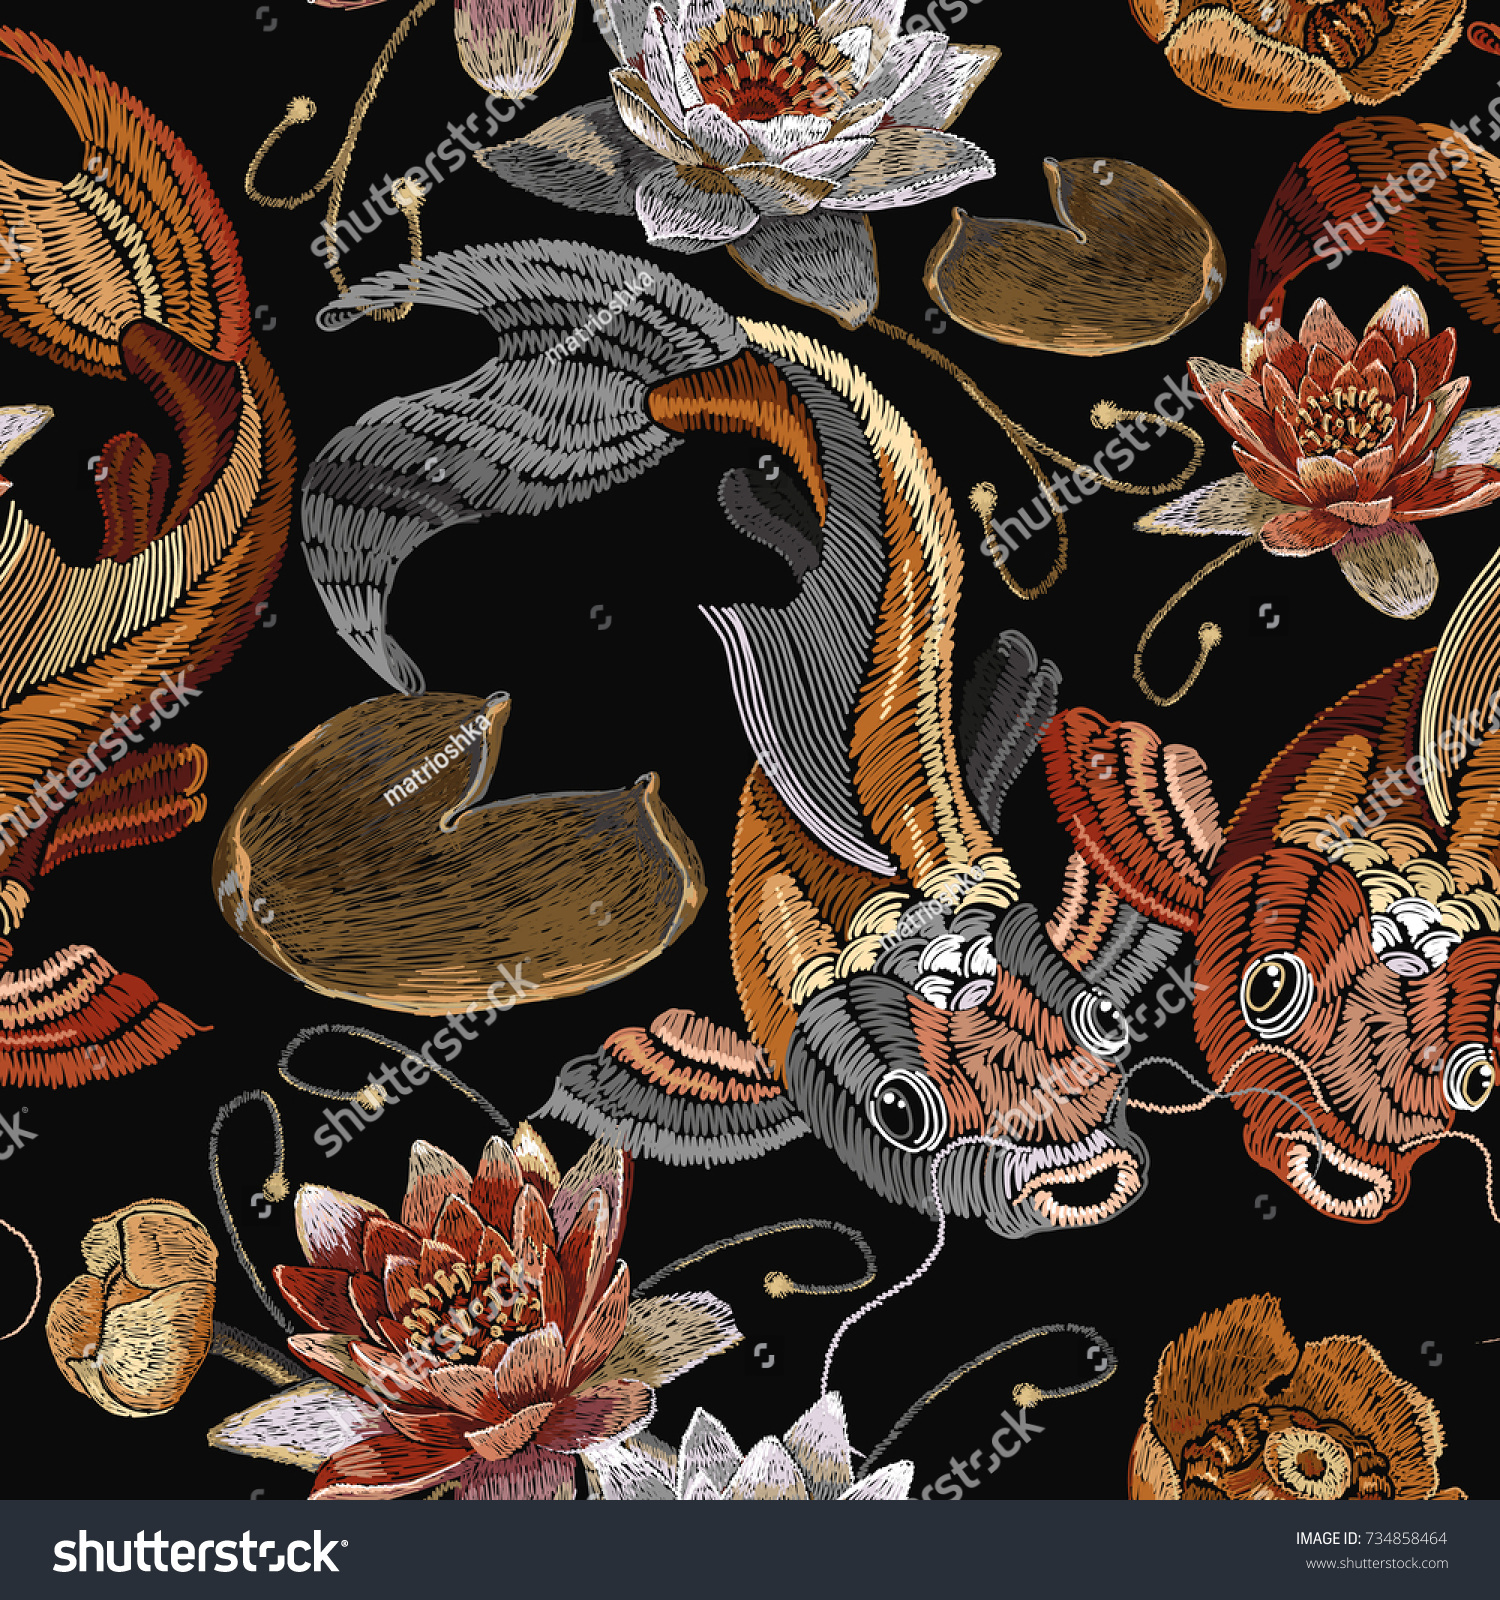 Embroidery vintage koi fish and water lily seamless pattern japanese pattern classical embroidery koi